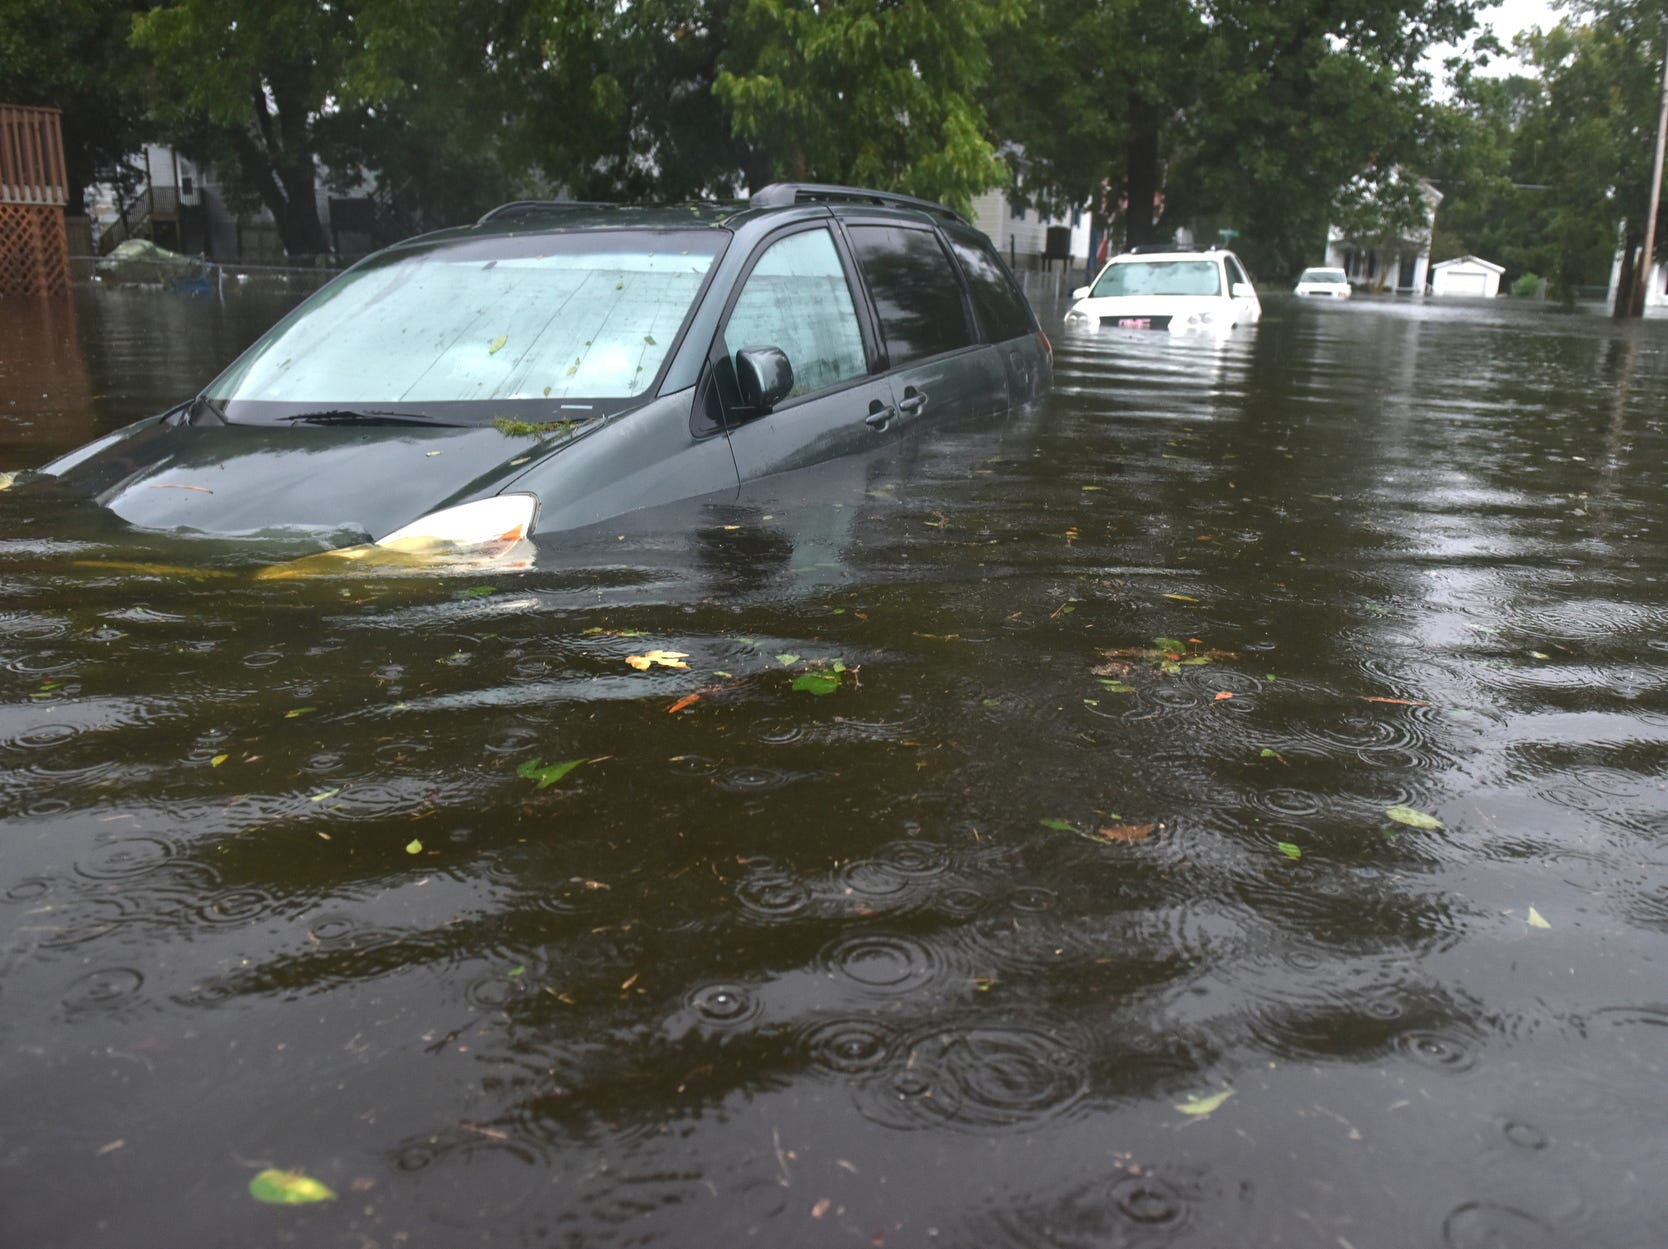 Cars sit in high water on W 6th St after Hurricane Florence brought heavy rains to Washington, N.C. on Friday.